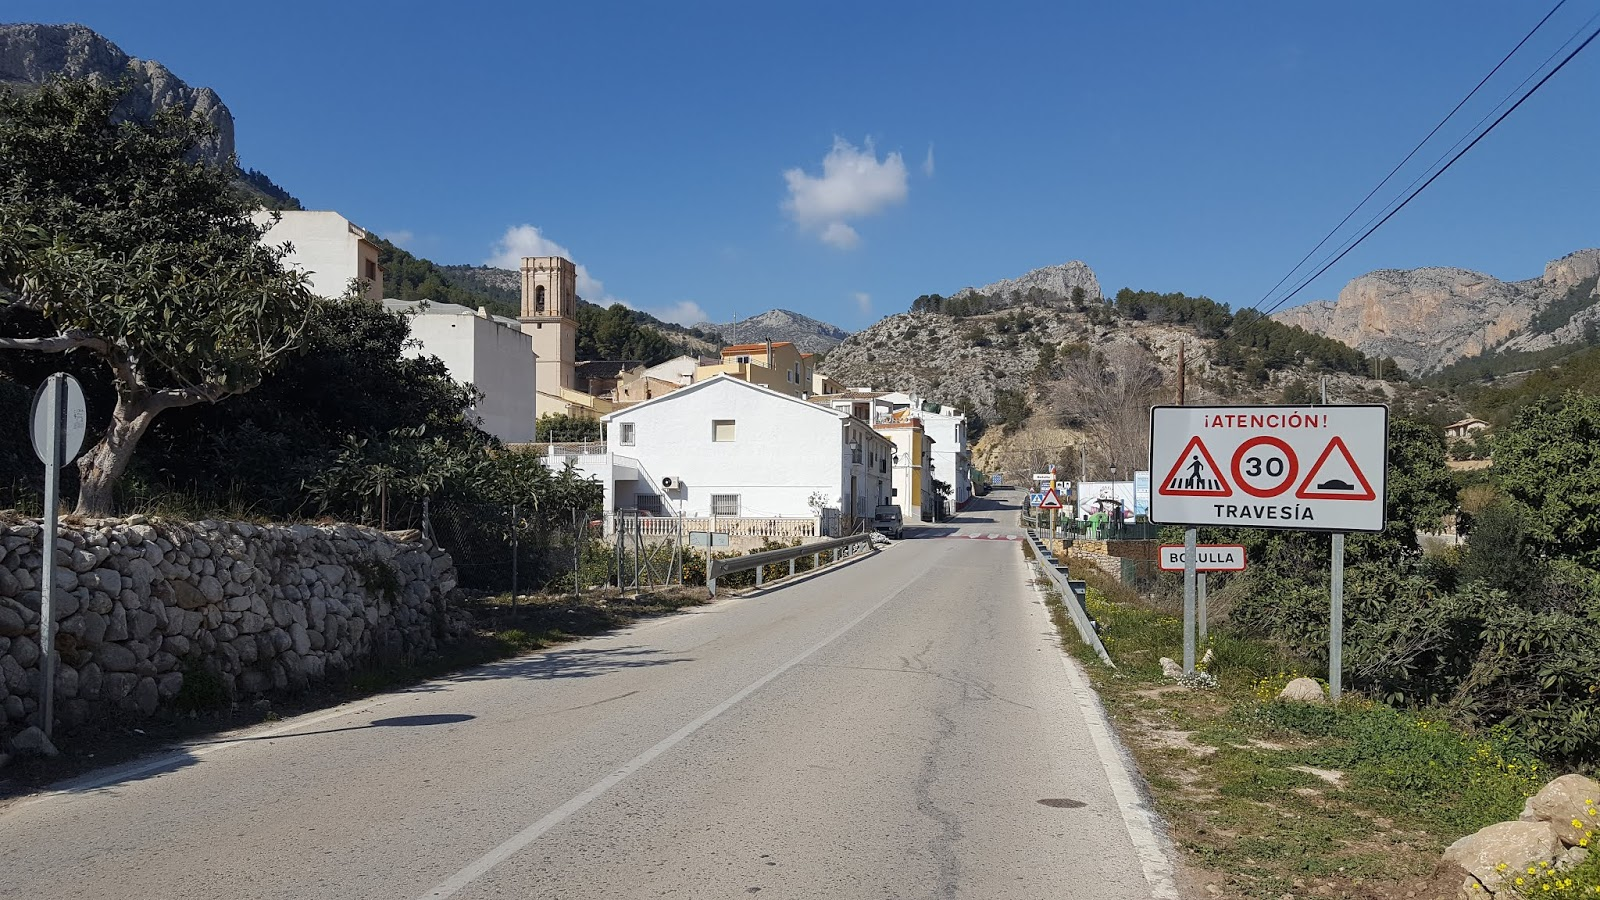 The village of Bolulla on the climb of Coll de Rates